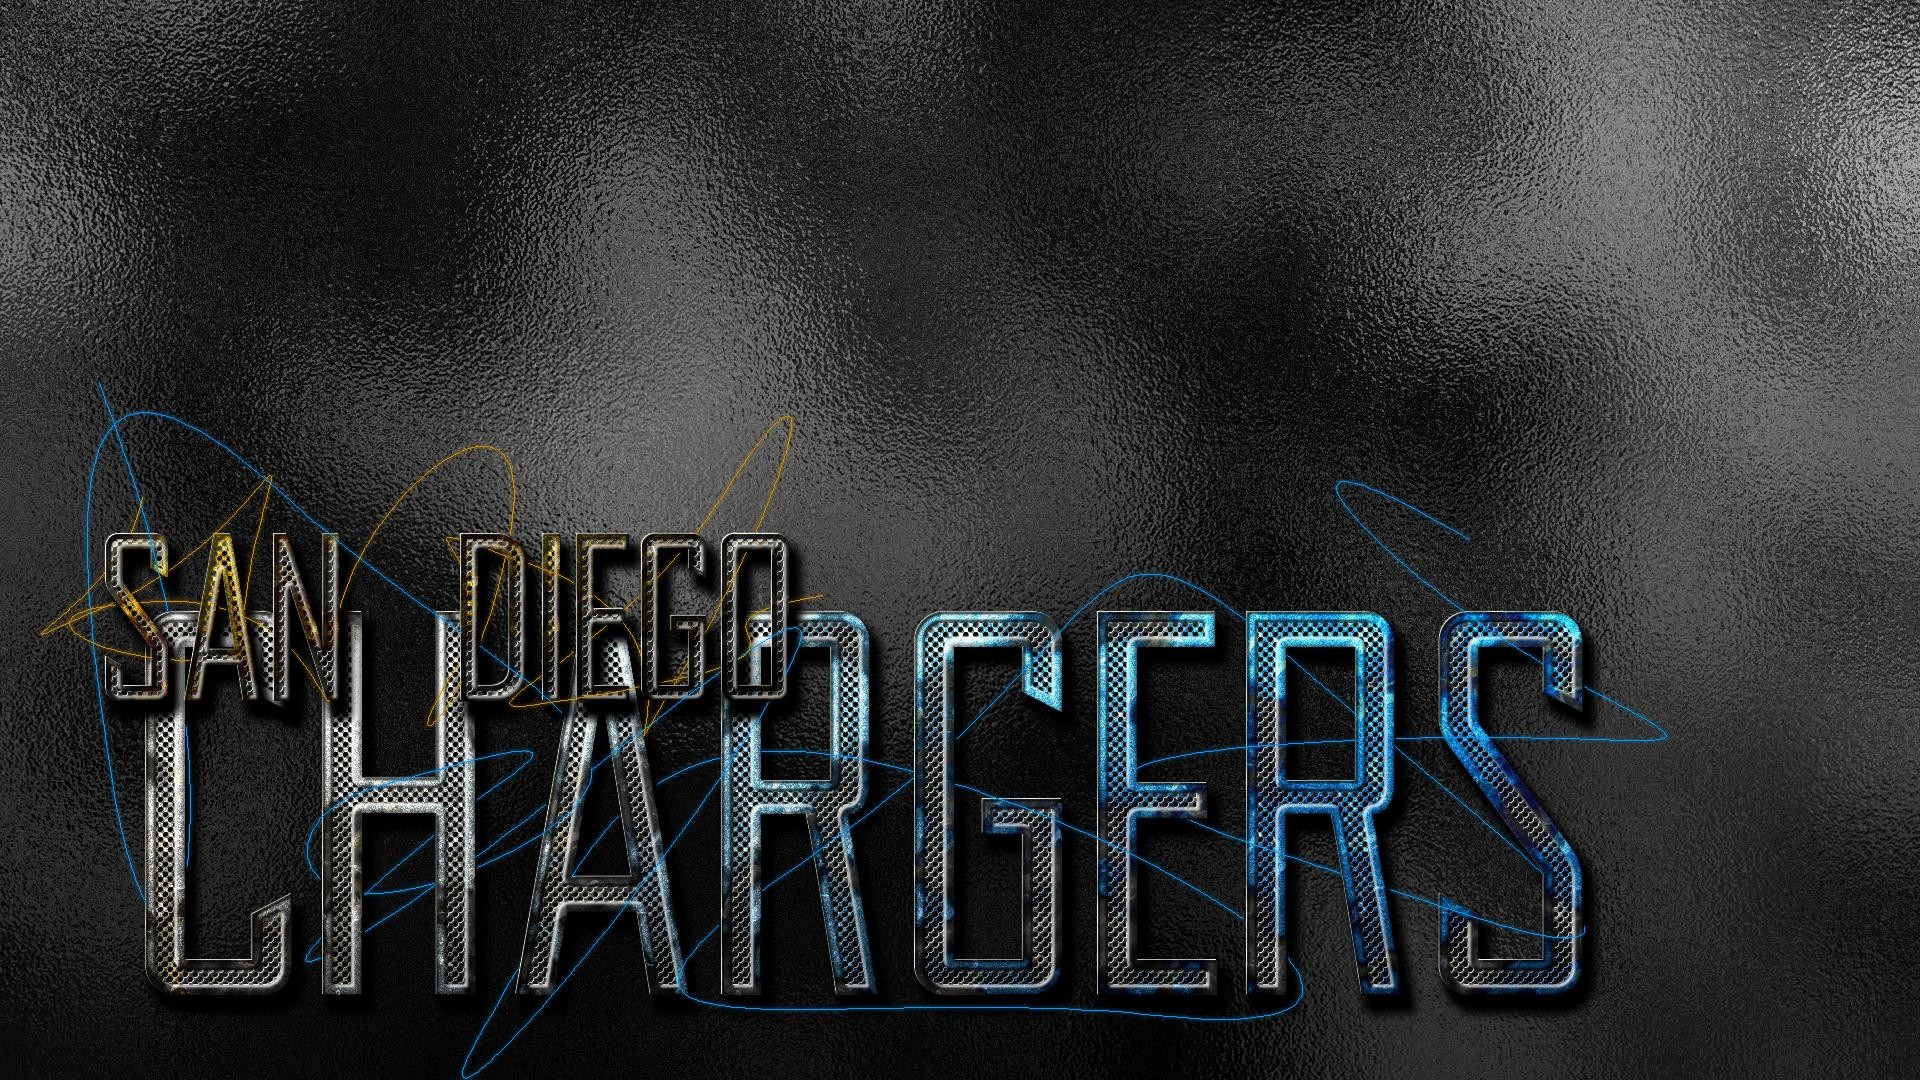 San Diego Chargers Wallpapers Wallpapertag